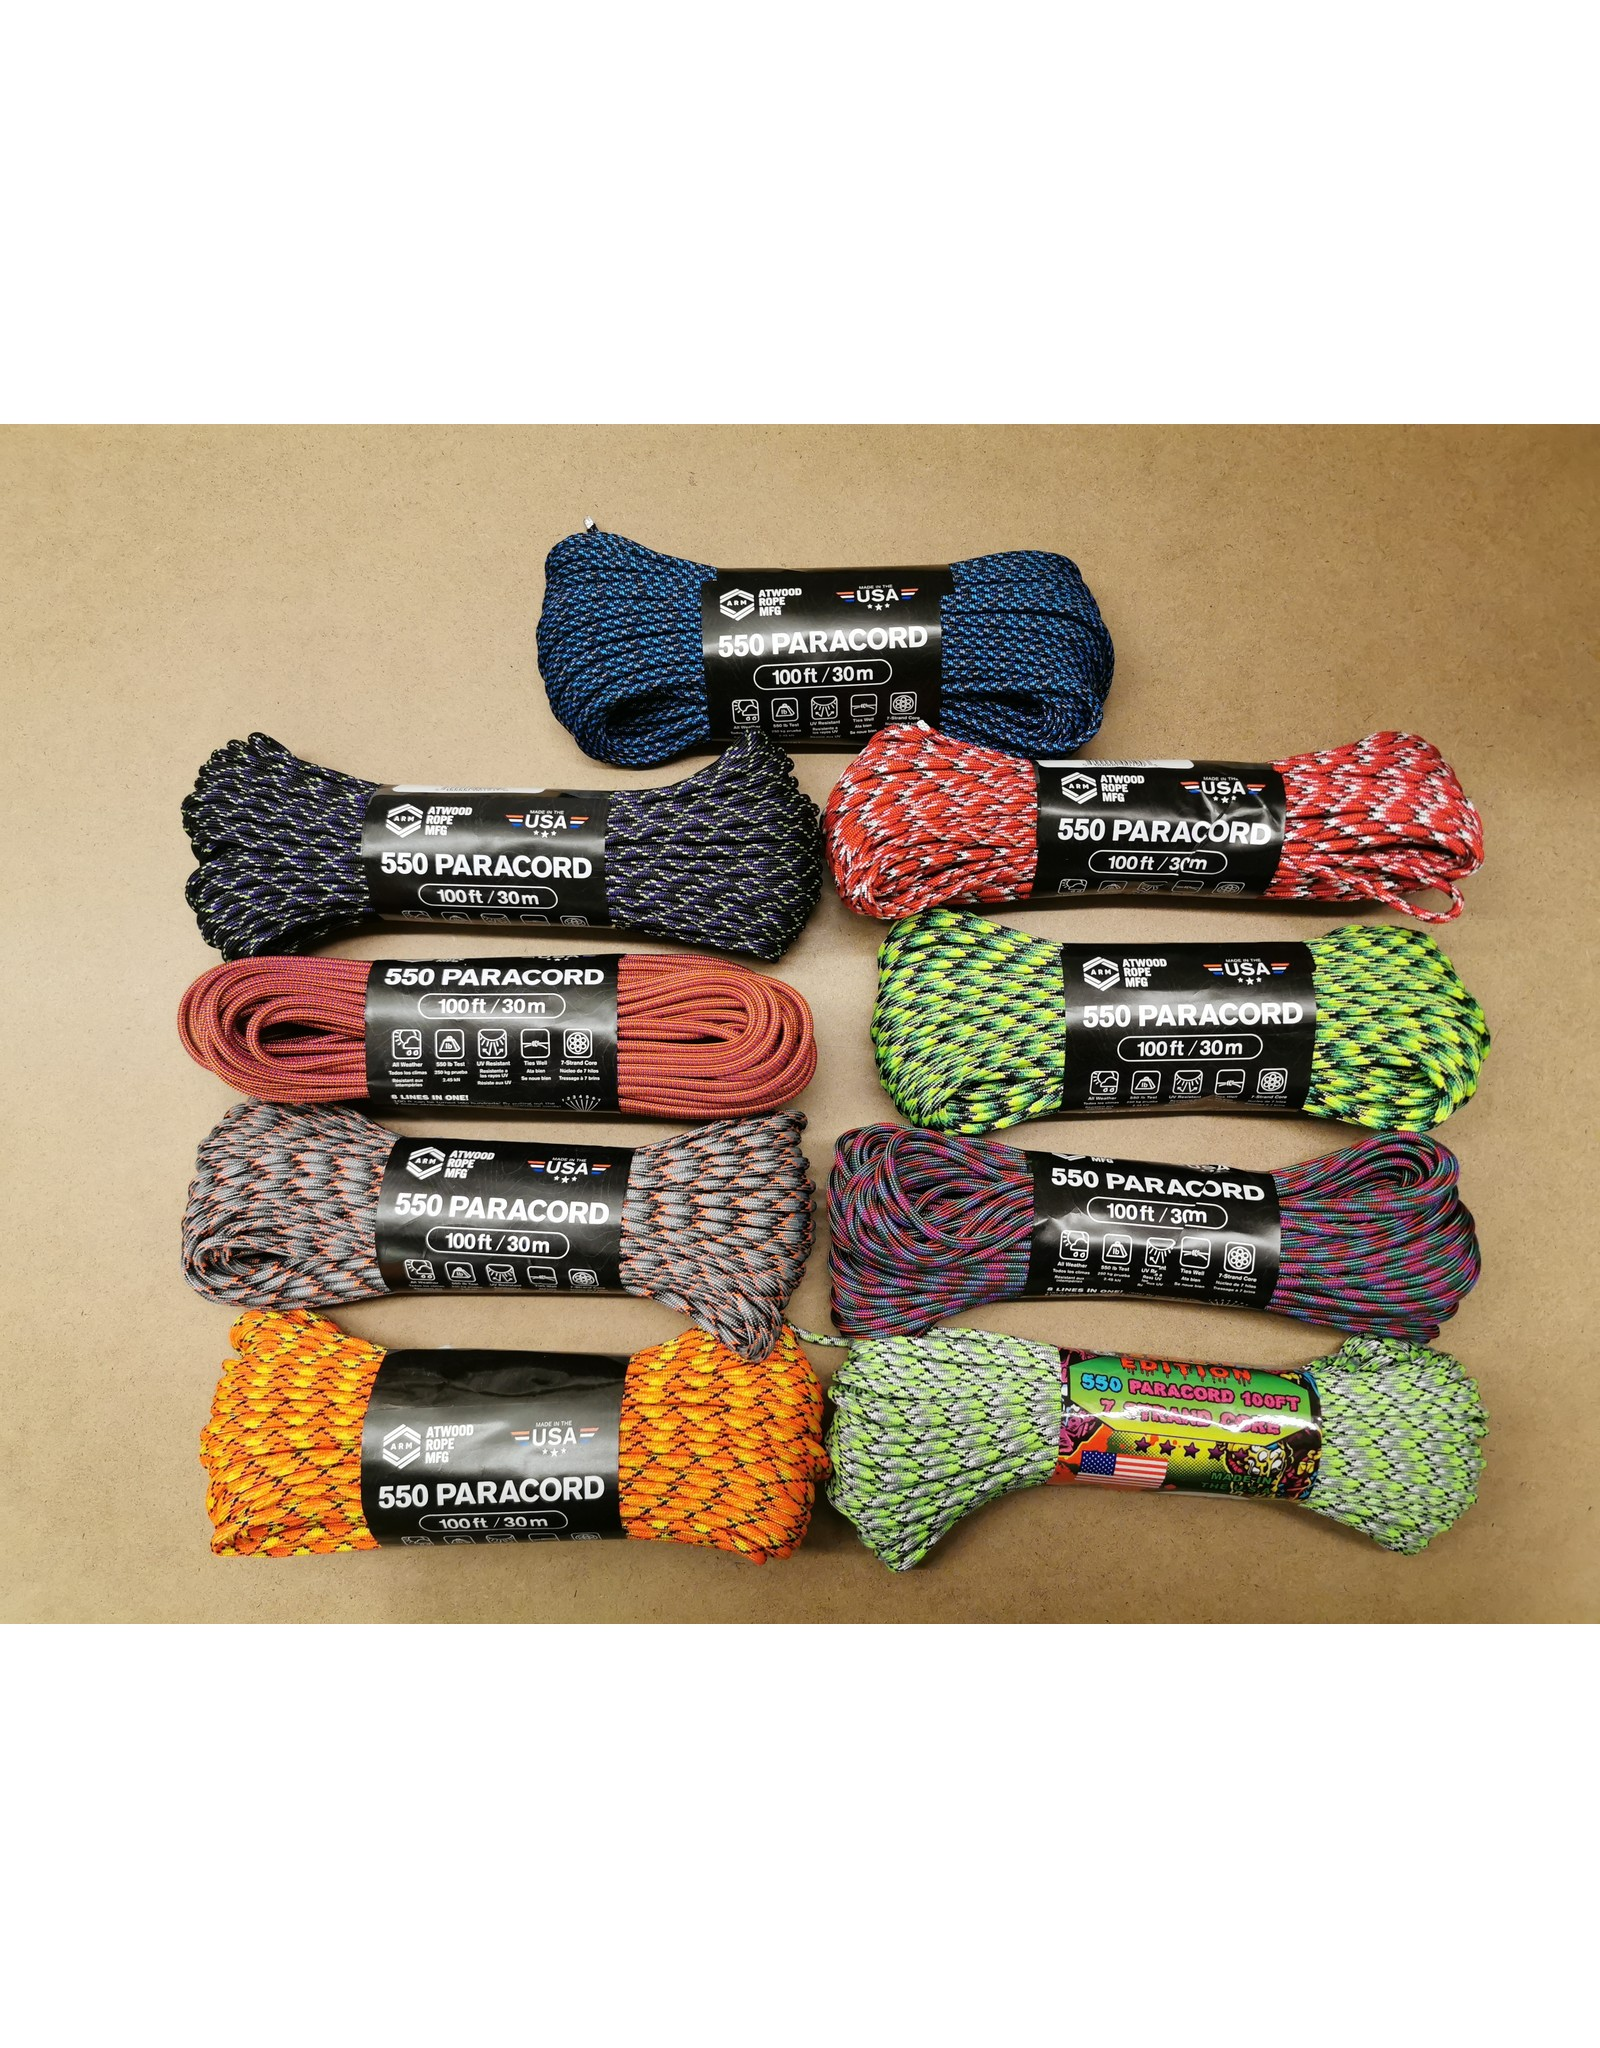 ATWOOD ROPE MFG EVEN MORE PARACORD